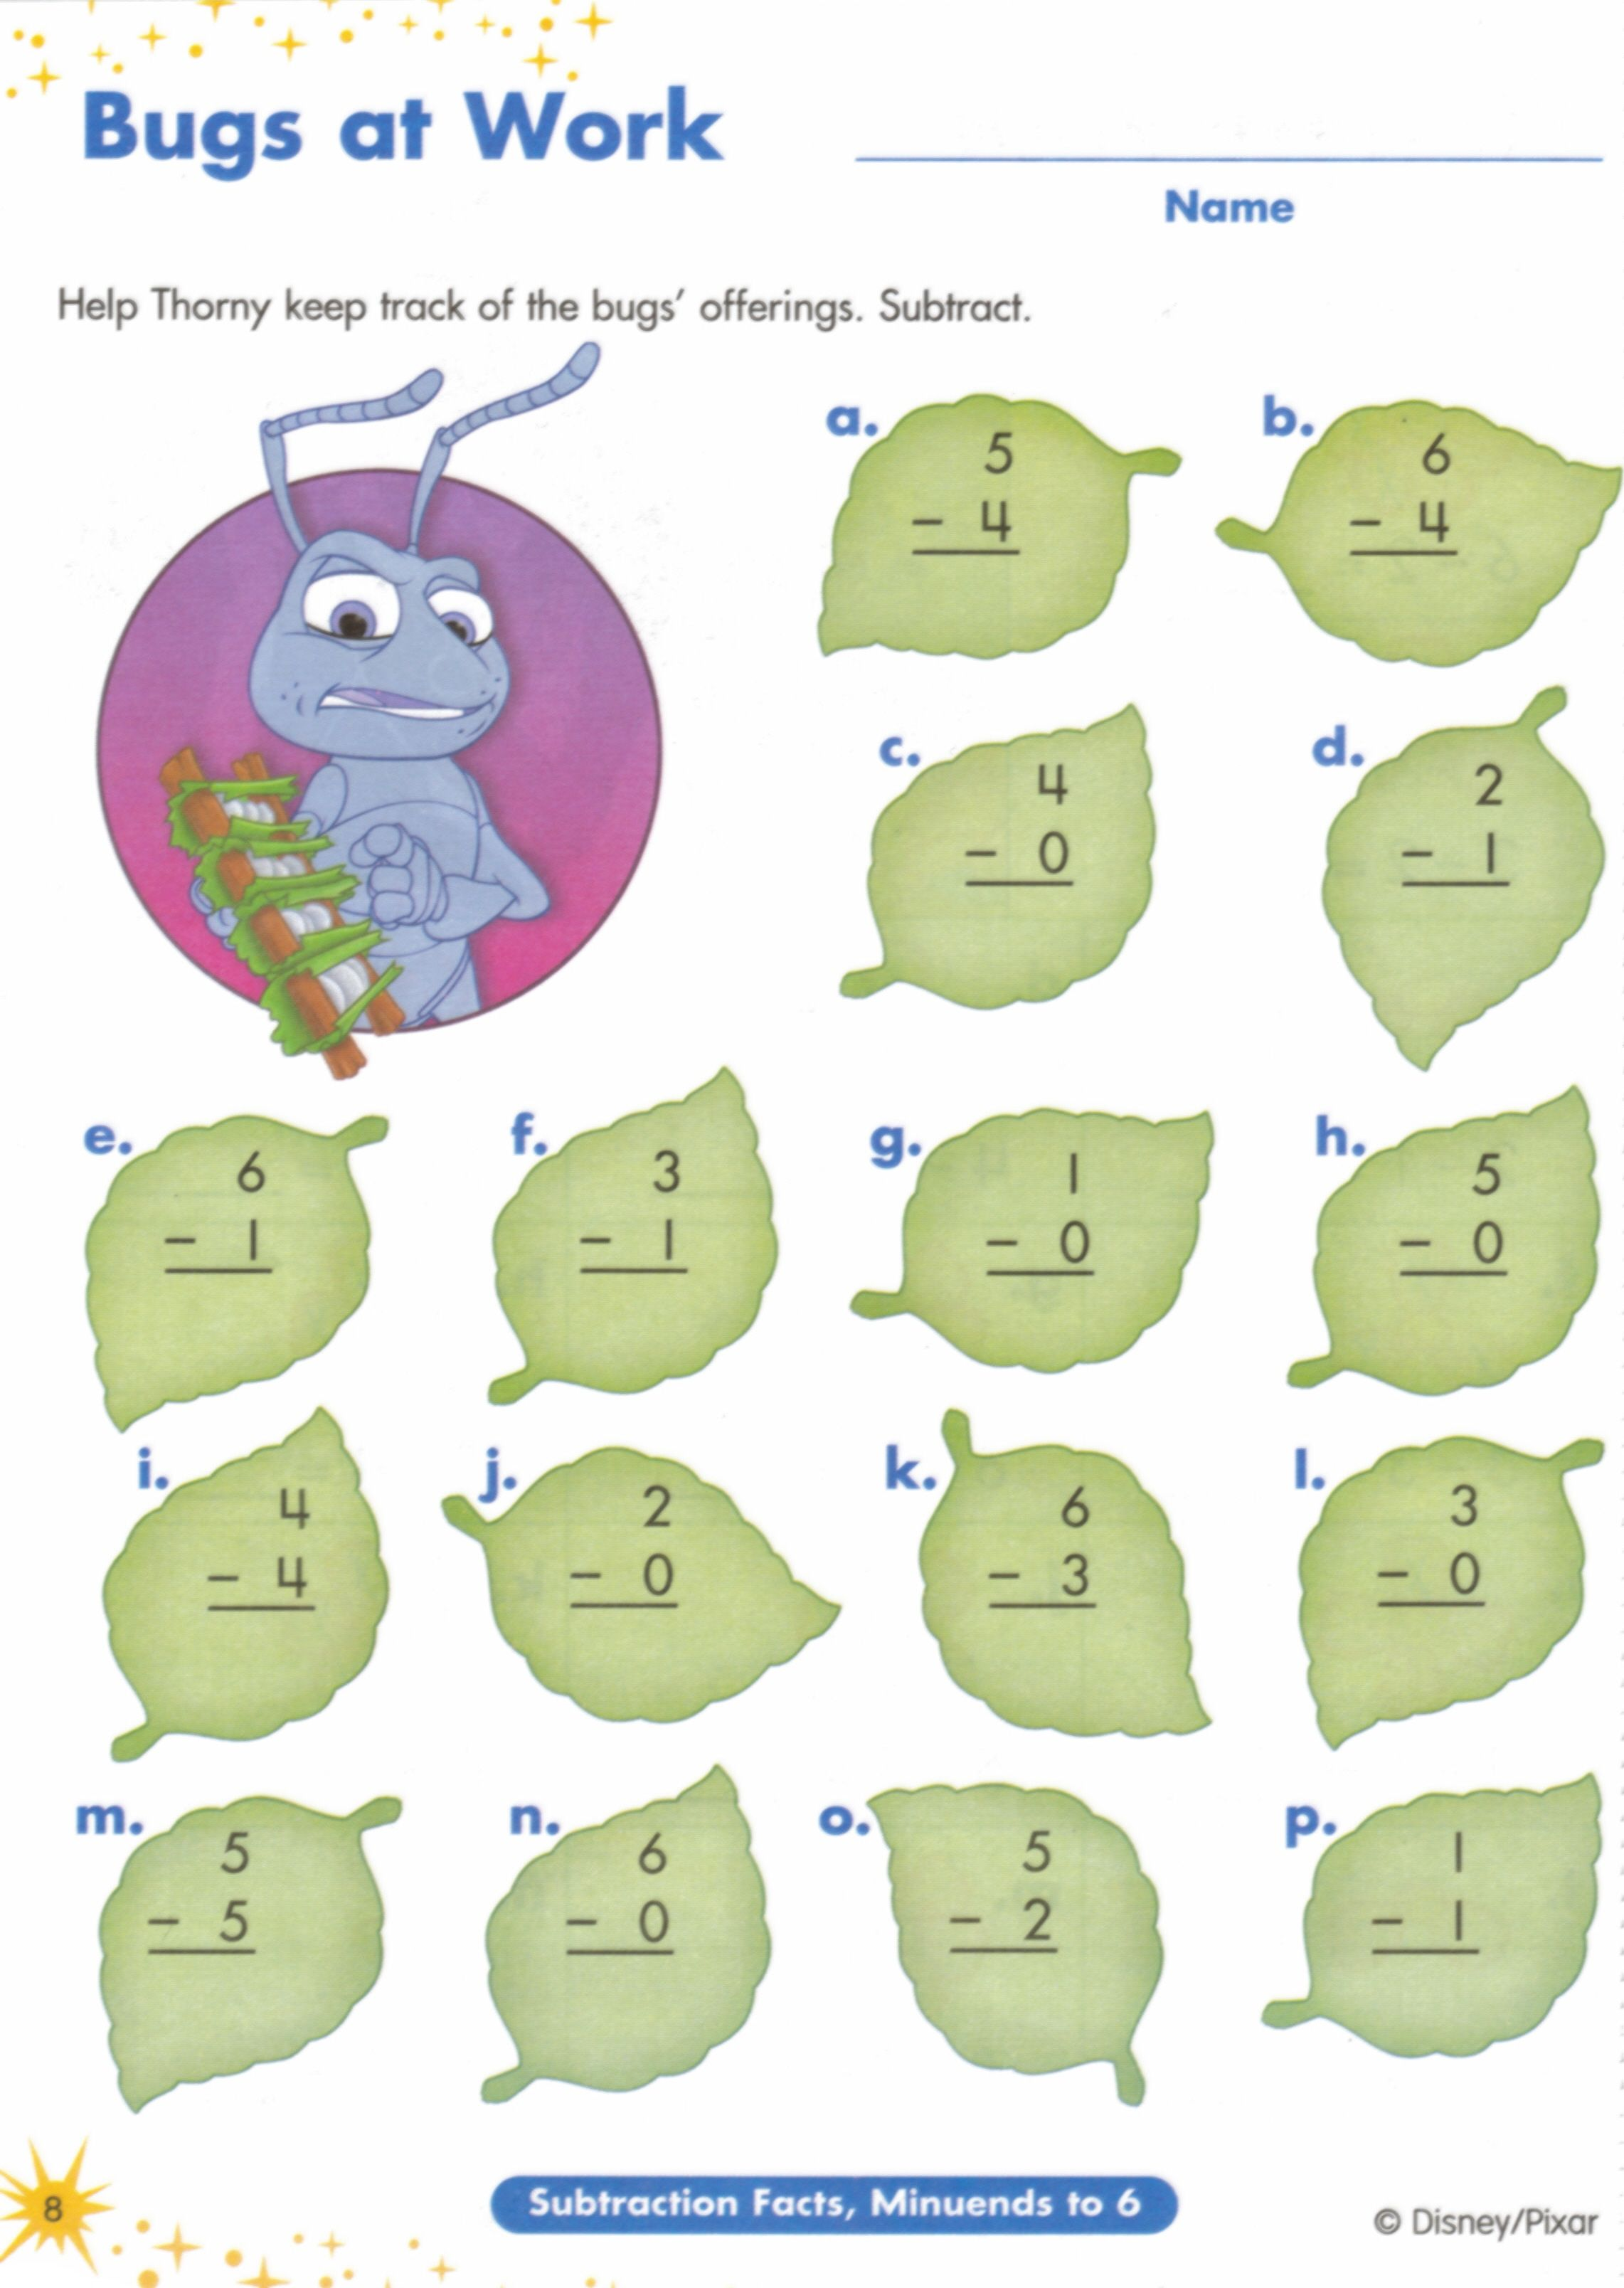 Weirdmailus  Marvelous  Images About Worksheets On Pinterest  Fun Facts For Kids  With Lovely  Images About Worksheets On Pinterest  Fun Facts For Kids Earth Day Worksheets And Jungles With Adorable Difference Of Two Perfect Squares Worksheet Also Color Worksheet For Preschool In Addition Free Nd Grade Language Arts Worksheets And Polygon Identification Worksheet As Well As Number The Stars Worksheet Additionally Elementary Writing Worksheets From Pinterestcom With Weirdmailus  Lovely  Images About Worksheets On Pinterest  Fun Facts For Kids  With Adorable  Images About Worksheets On Pinterest  Fun Facts For Kids Earth Day Worksheets And Jungles And Marvelous Difference Of Two Perfect Squares Worksheet Also Color Worksheet For Preschool In Addition Free Nd Grade Language Arts Worksheets From Pinterestcom